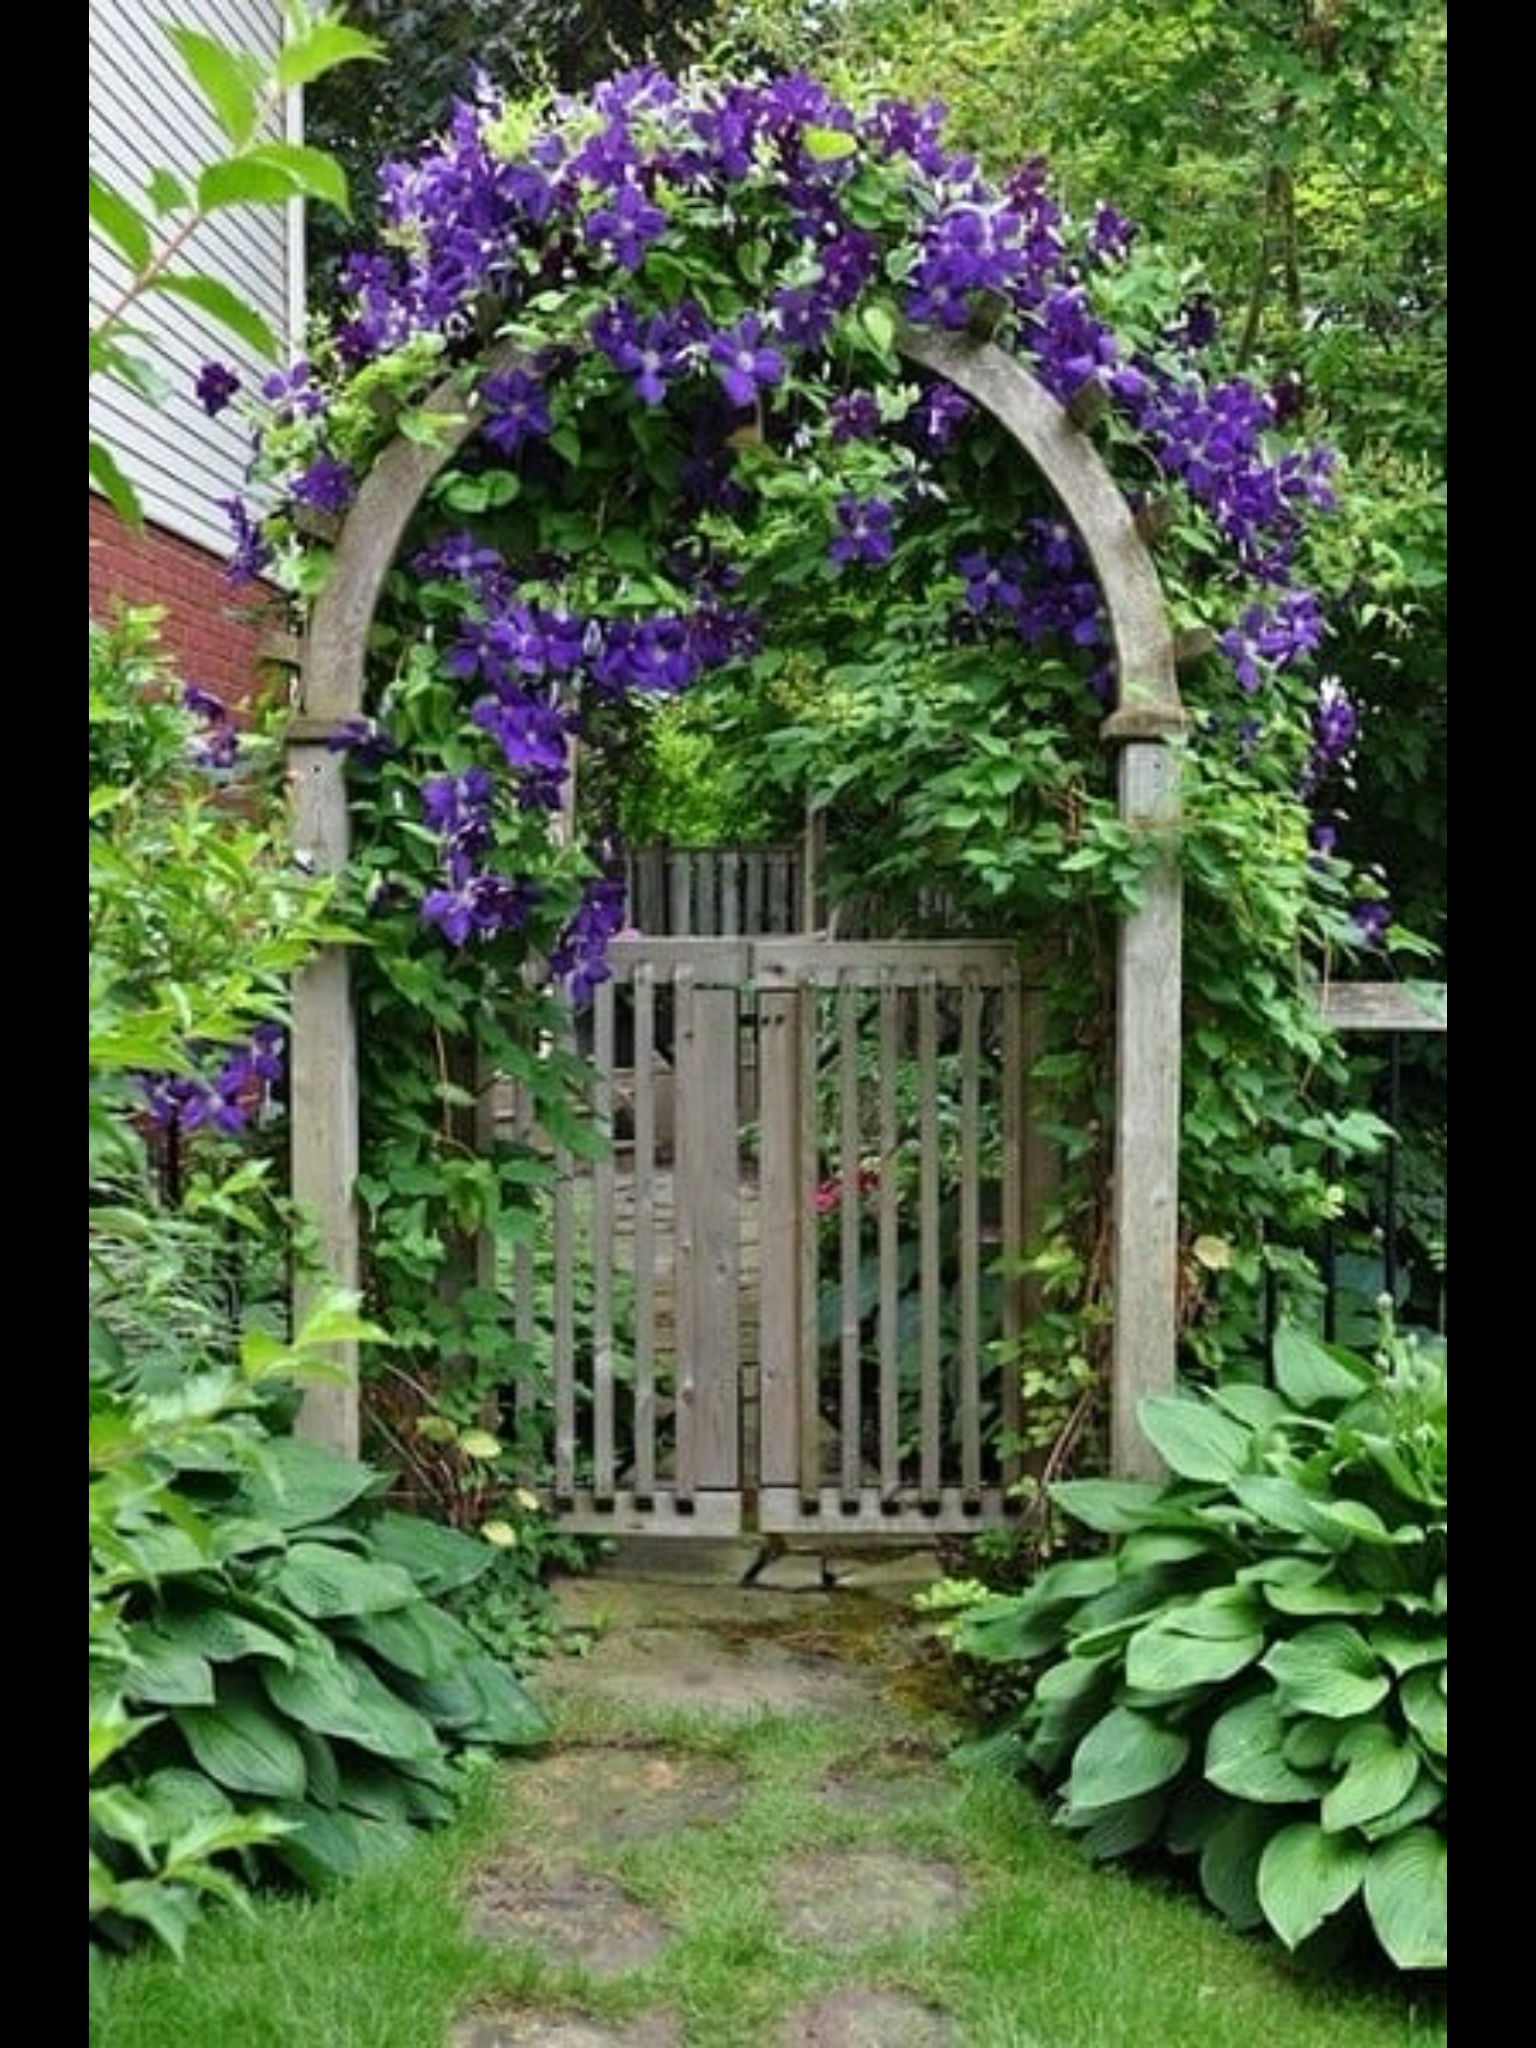 Garden gate and landscaping | Garden | Pinterest | Garden gate, Gate ...